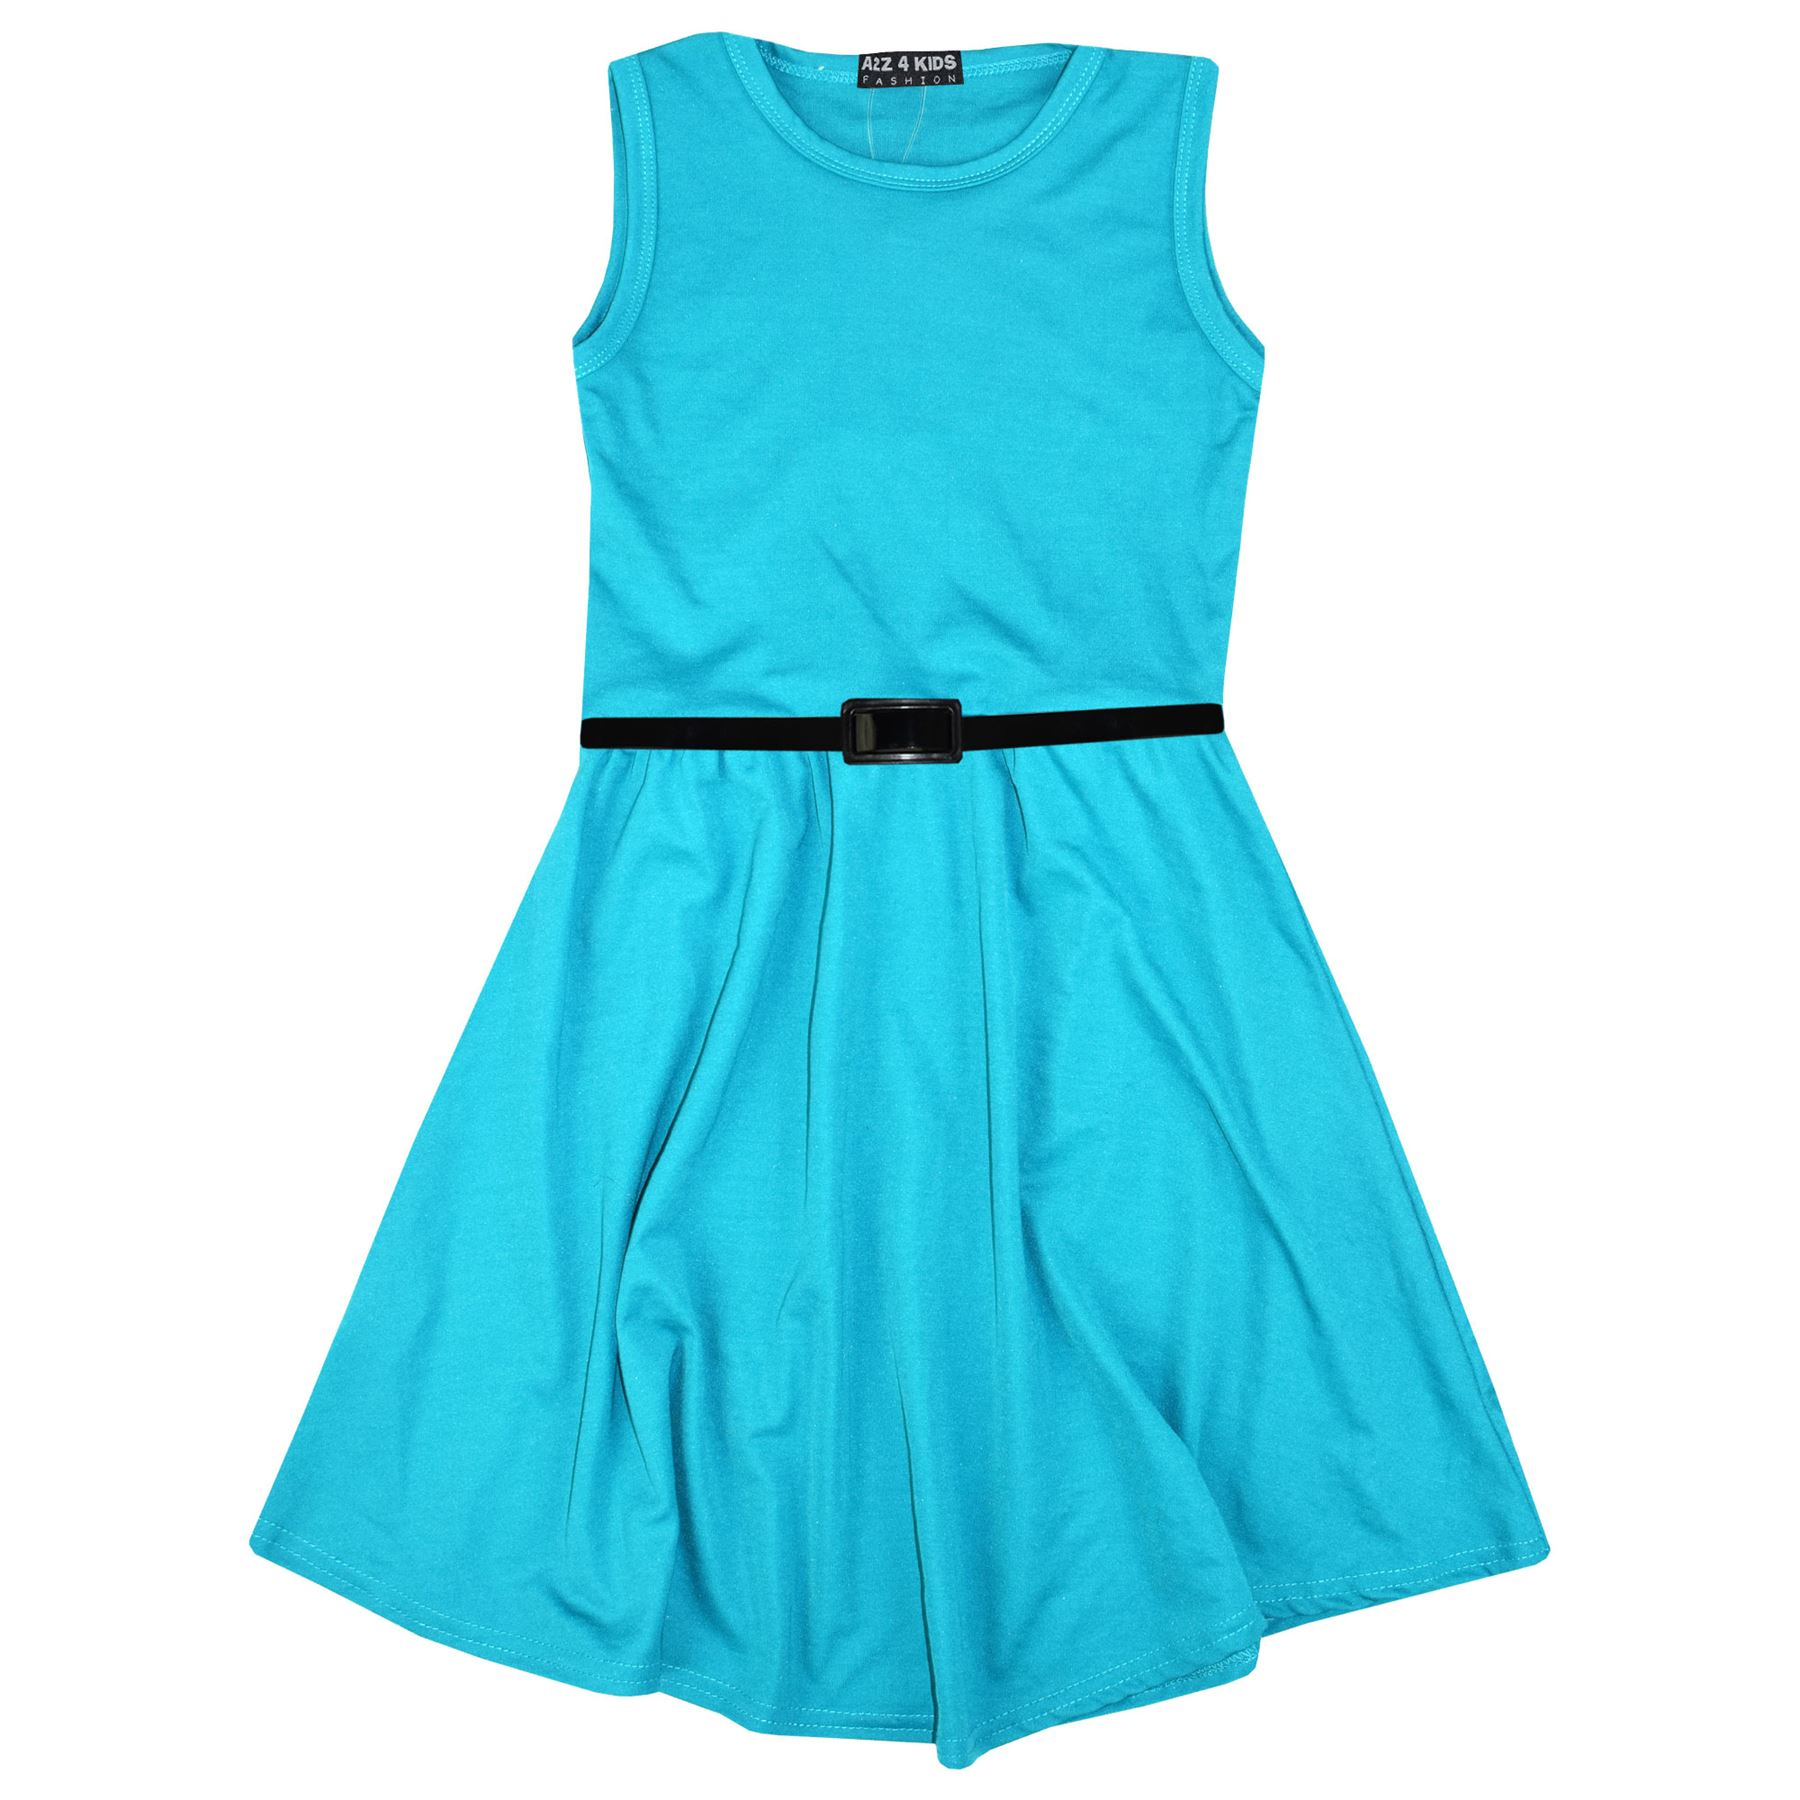 Girls-Skater-Dress-Kids-Party-Dresses-With-Free-Belt-5-6-7-8-9-10-11-12-13-Years miniatuur 83